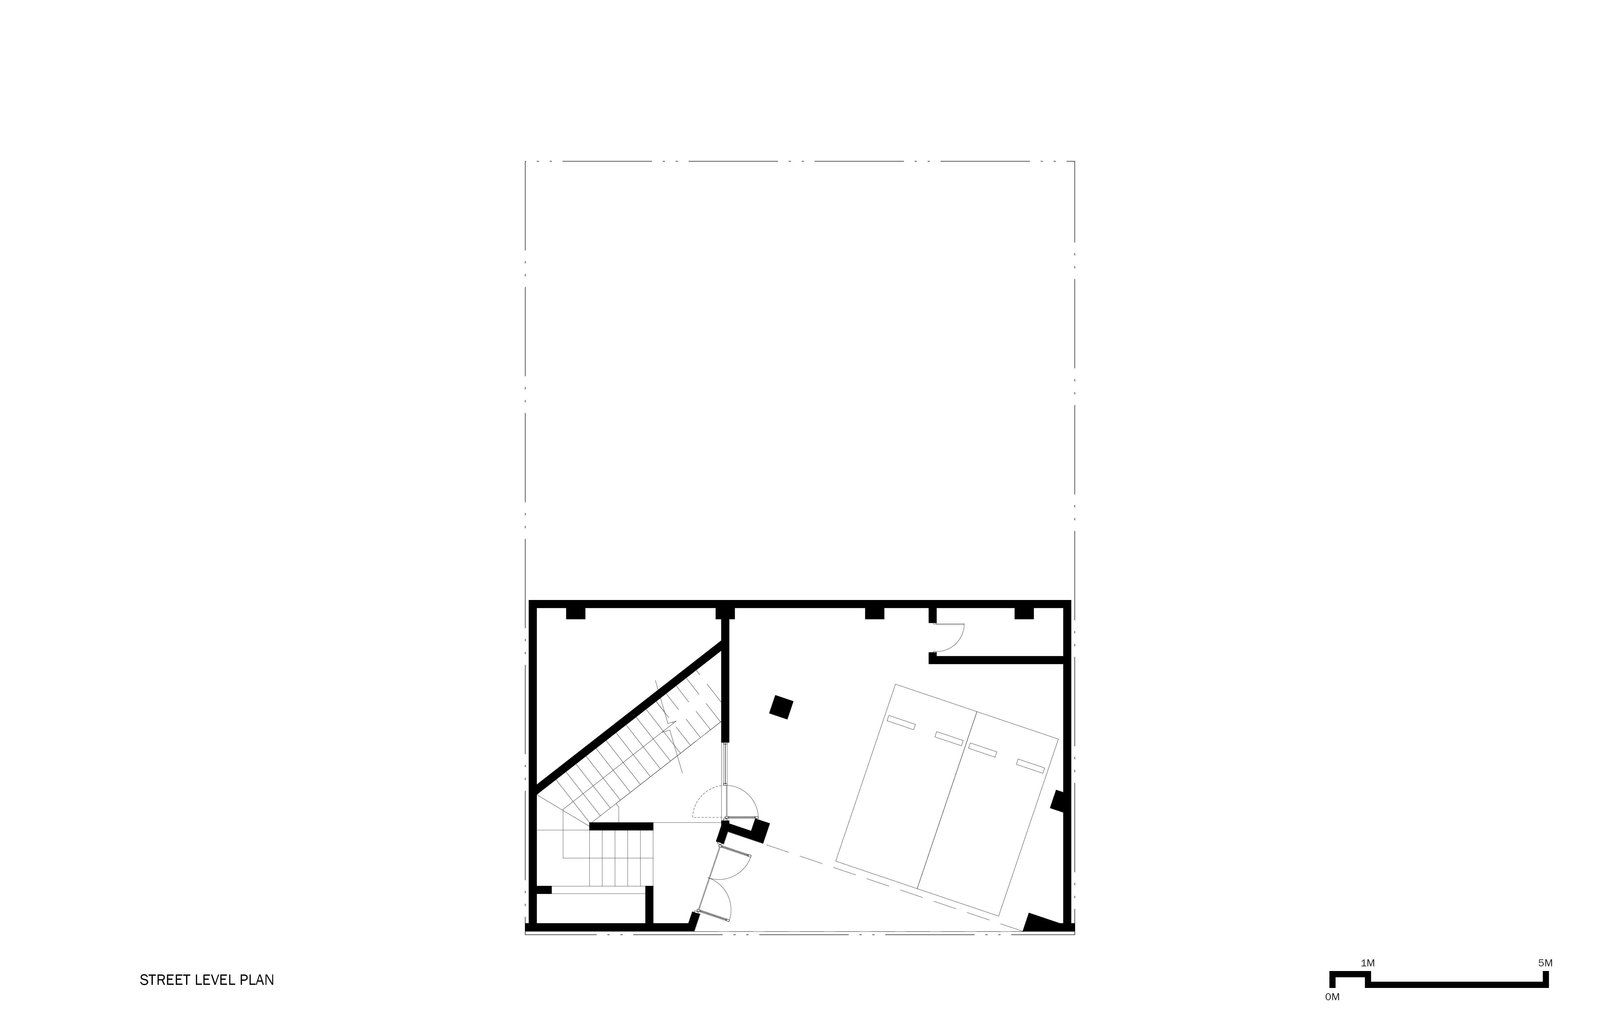 Street Level Plan  A House by Chang Kyu Lee